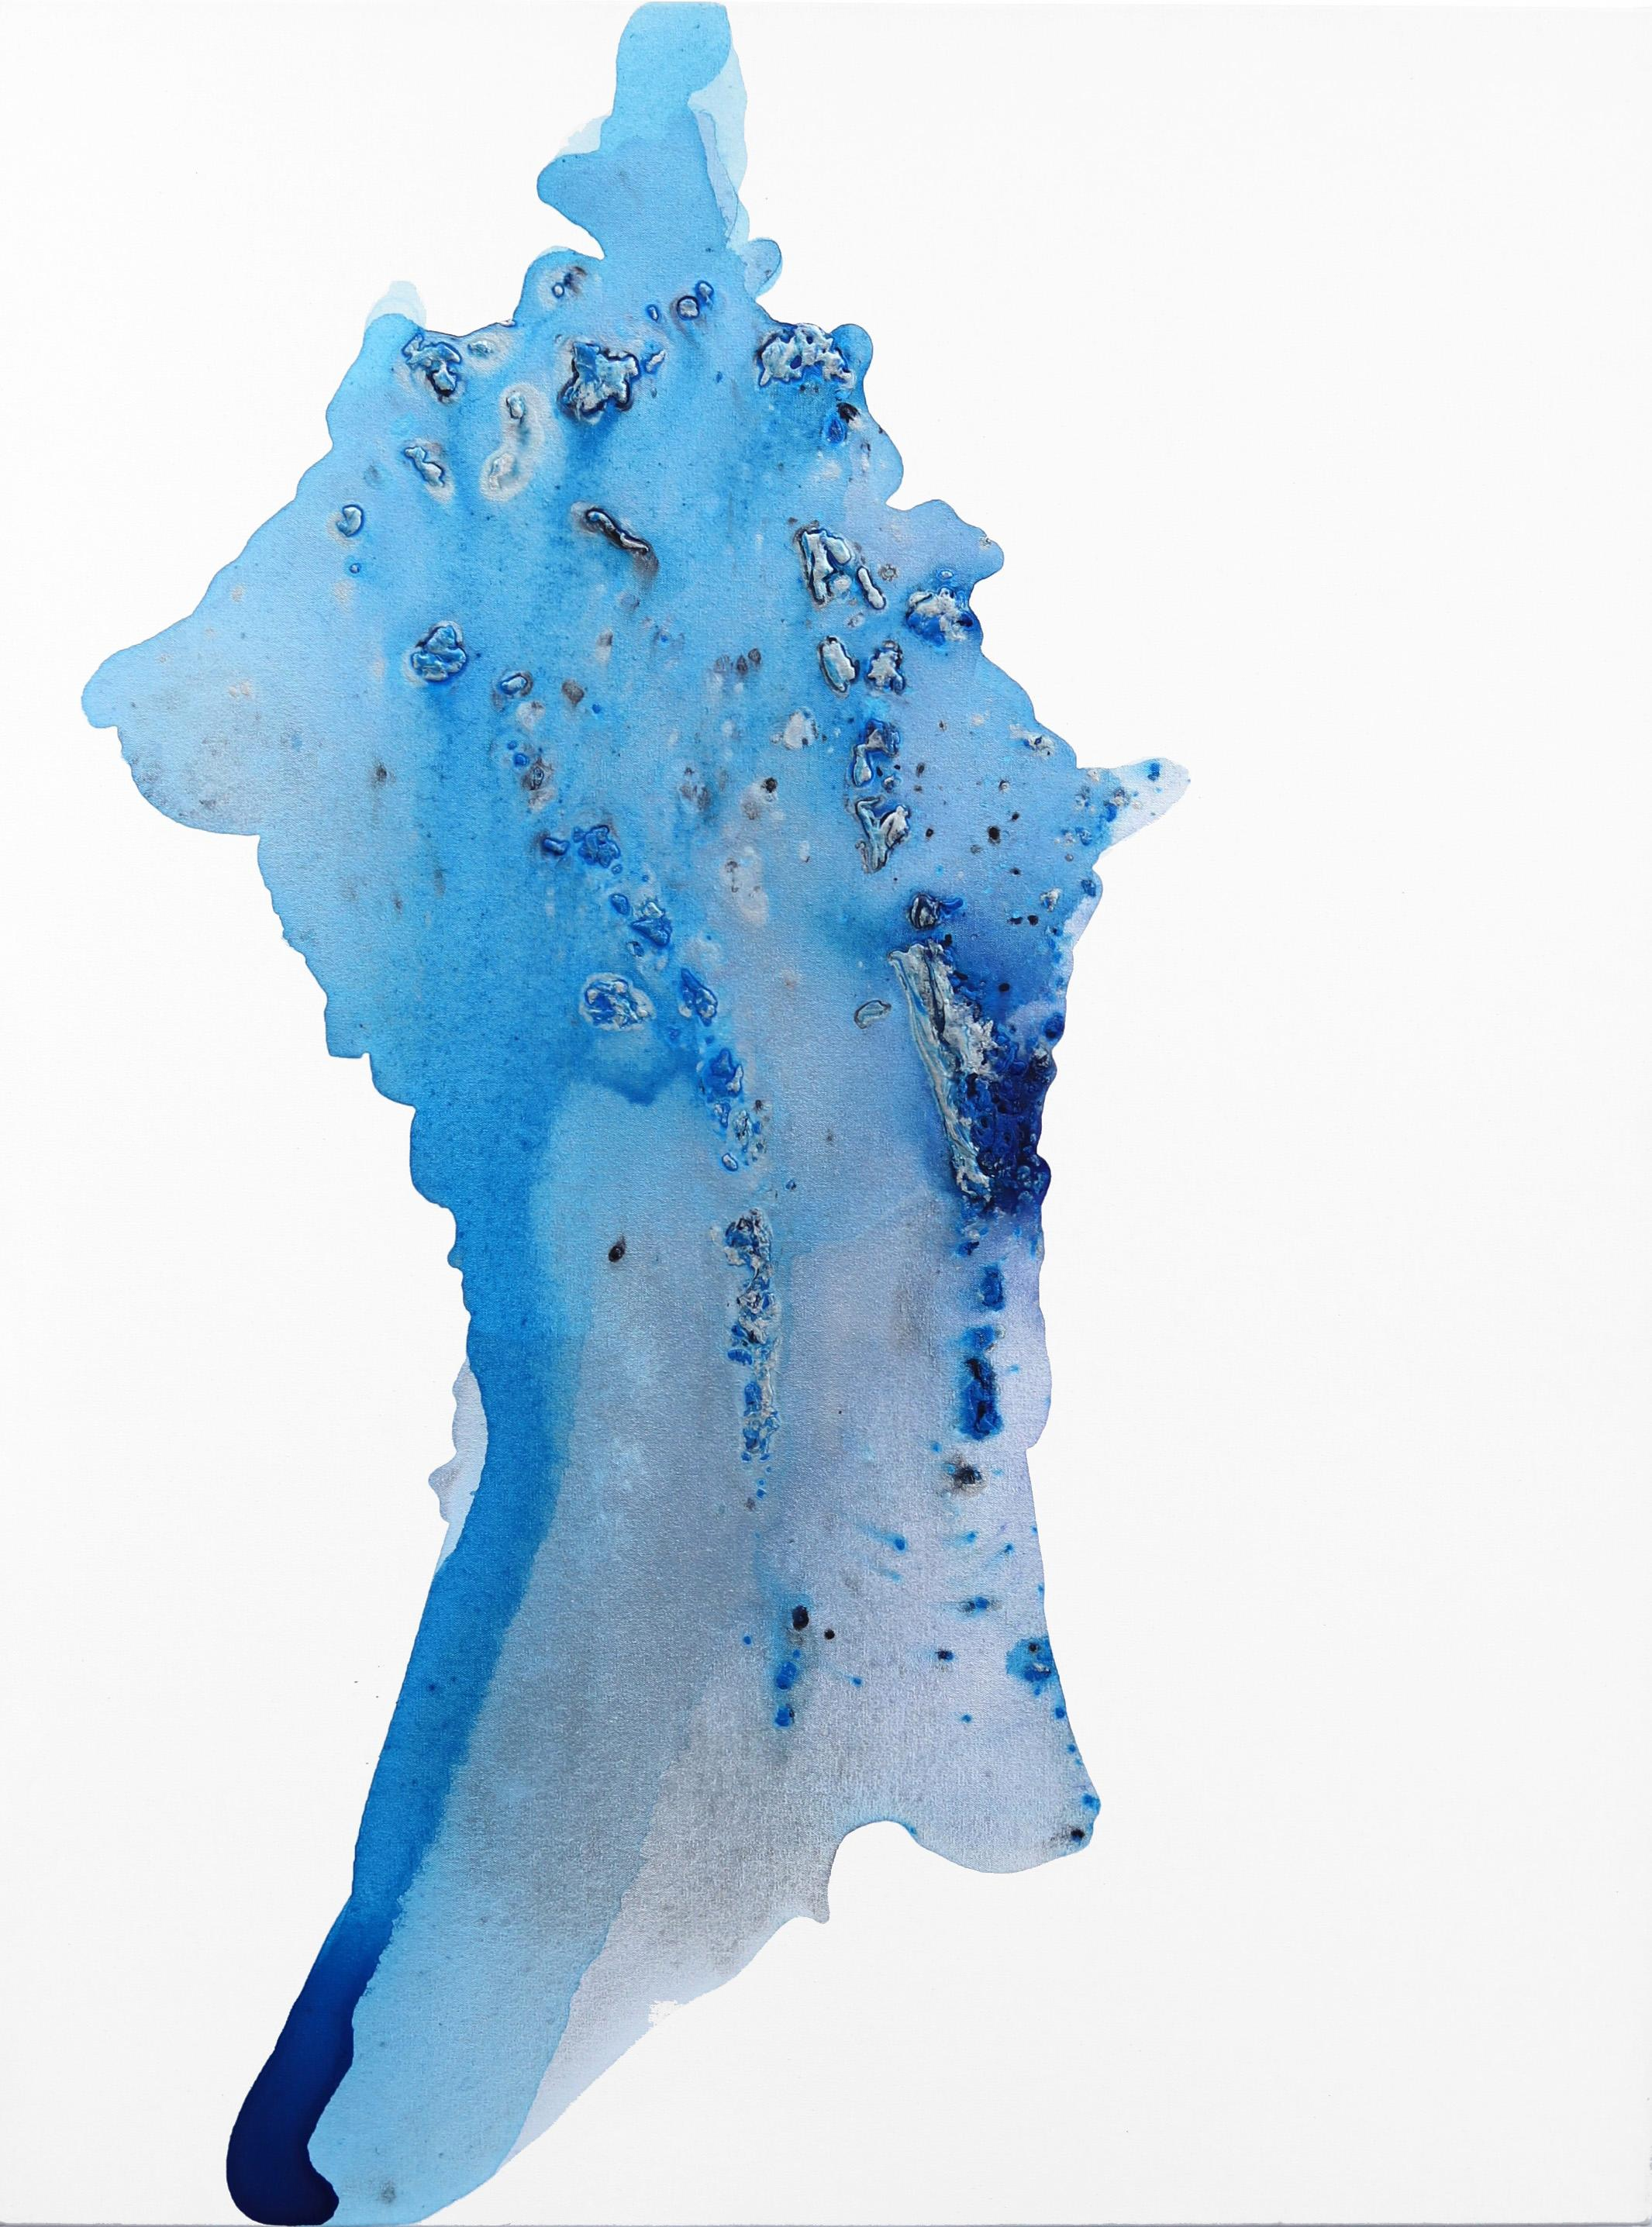 Island Blue - Ocean Blue Contemporary Waterscape Painting